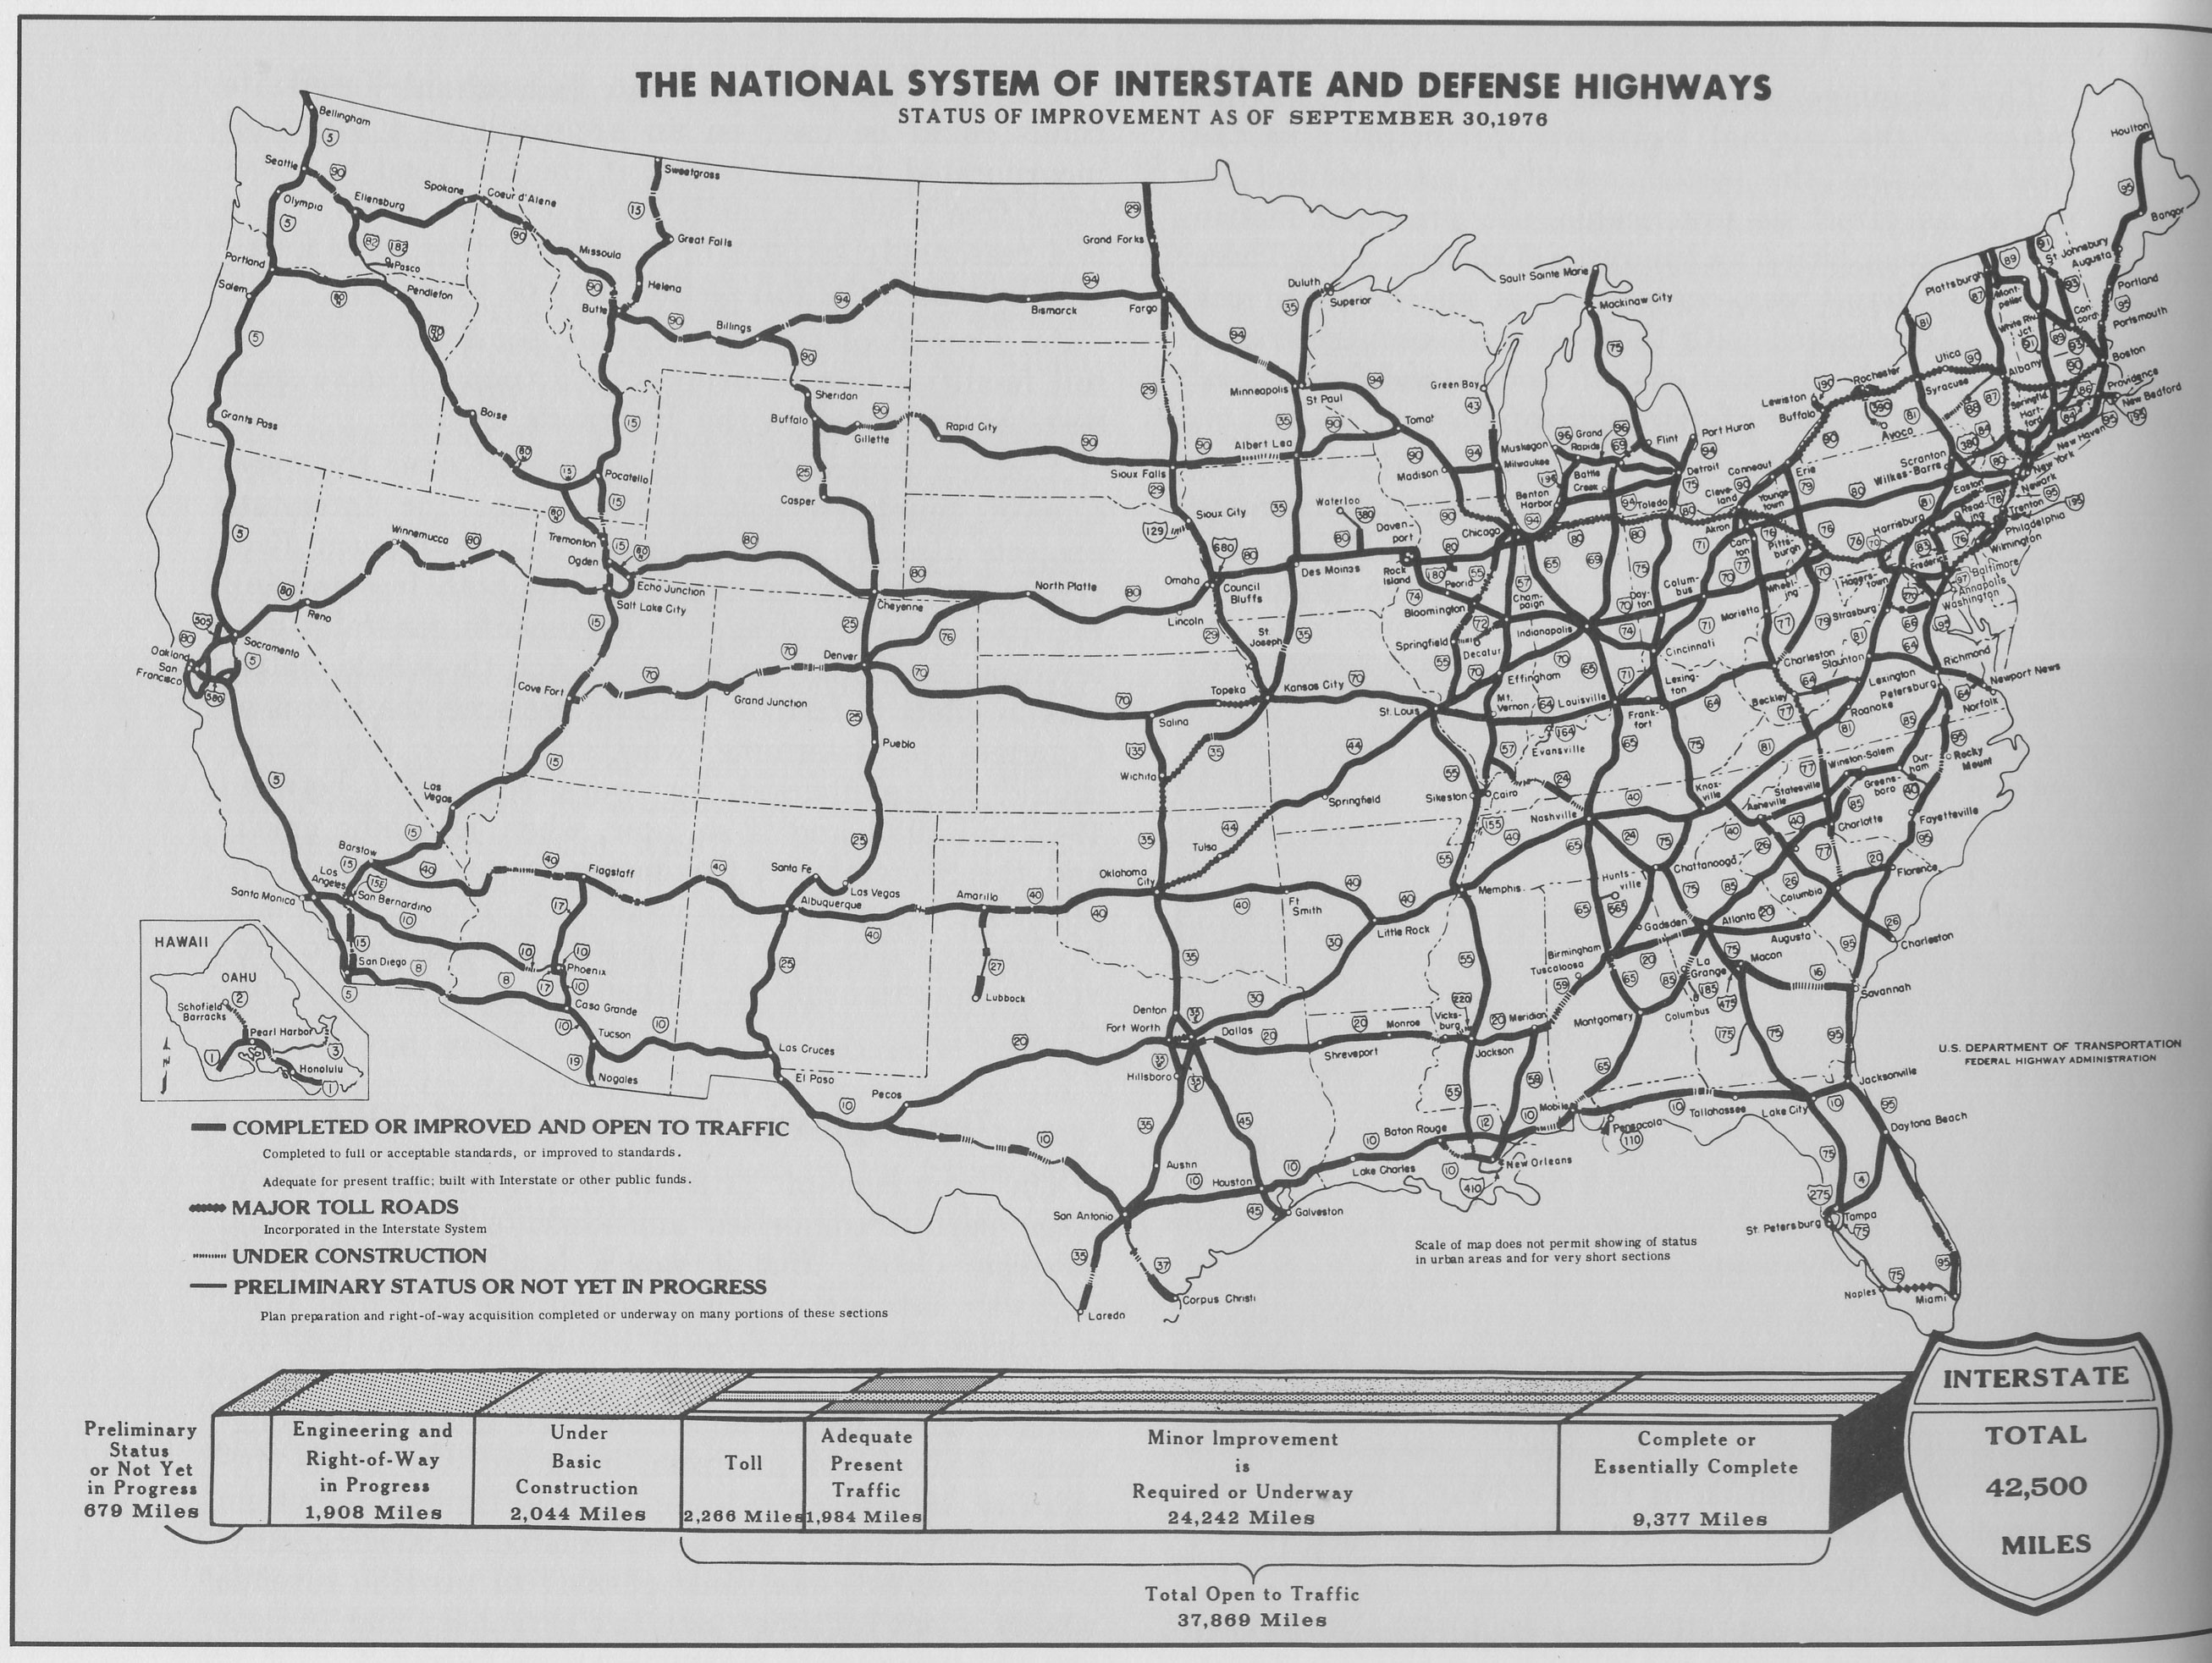 https://i1.wp.com/upload.wikimedia.org/wikipedia/commons/a/ac/Interstate_Highway_status_September_30,_1976.jpg